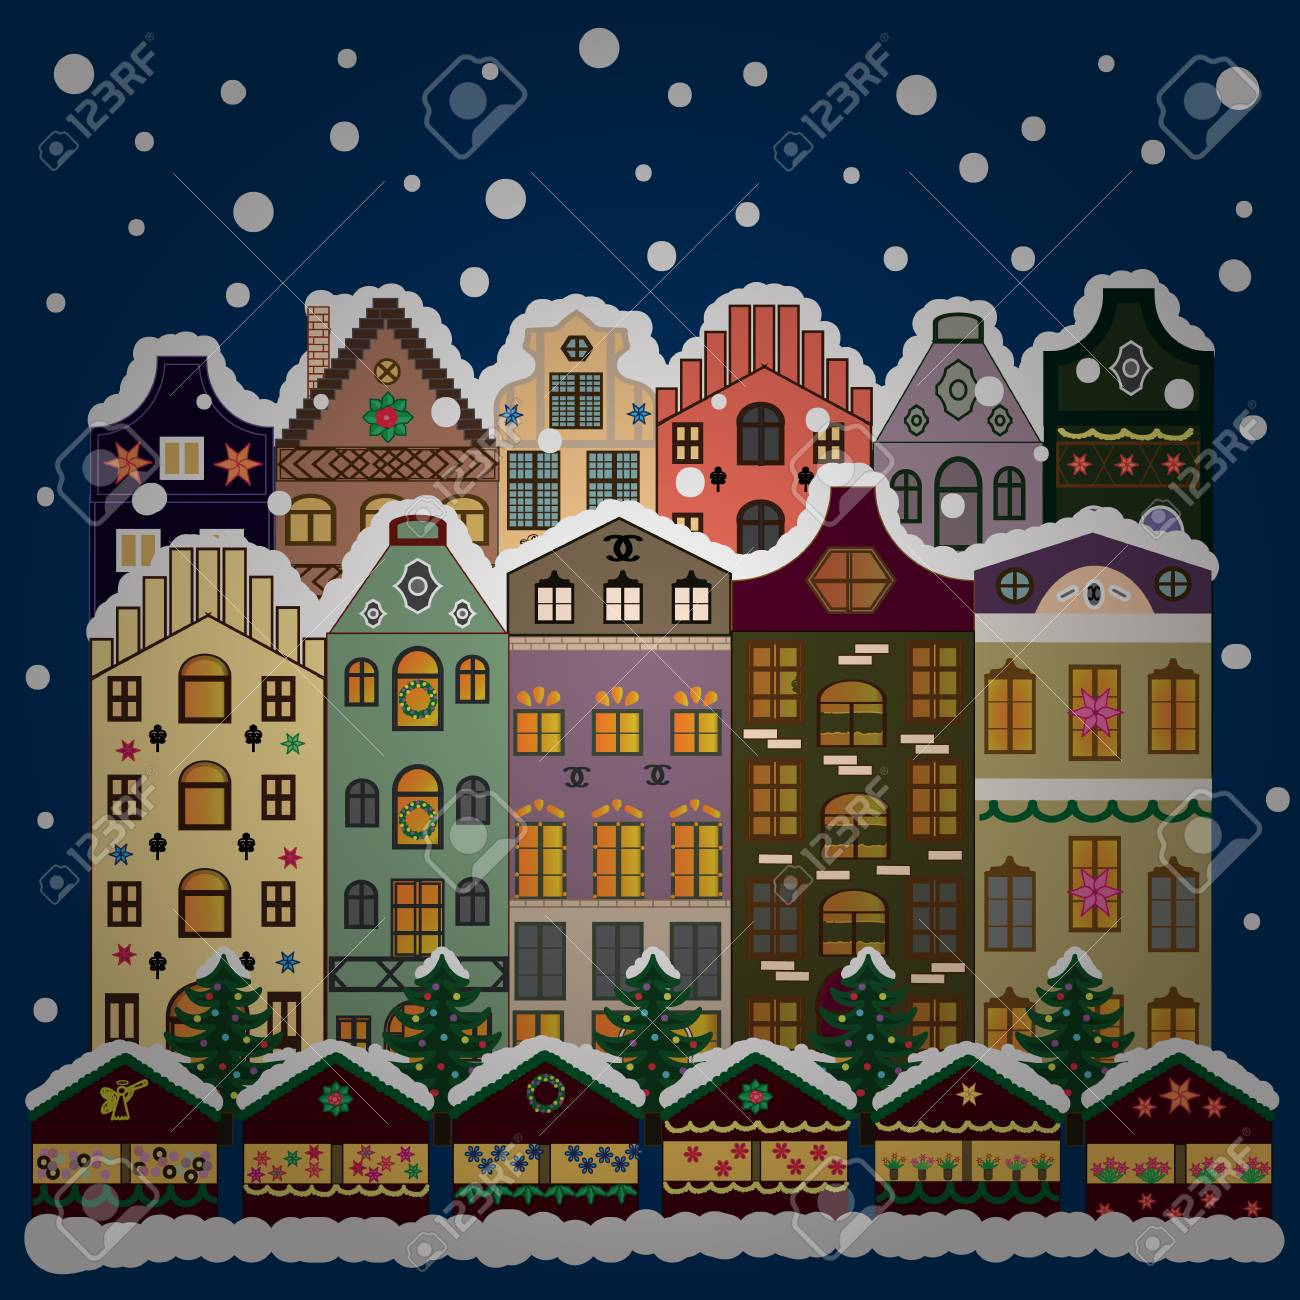 vector illustration eps 10 winter city with blue trees cute